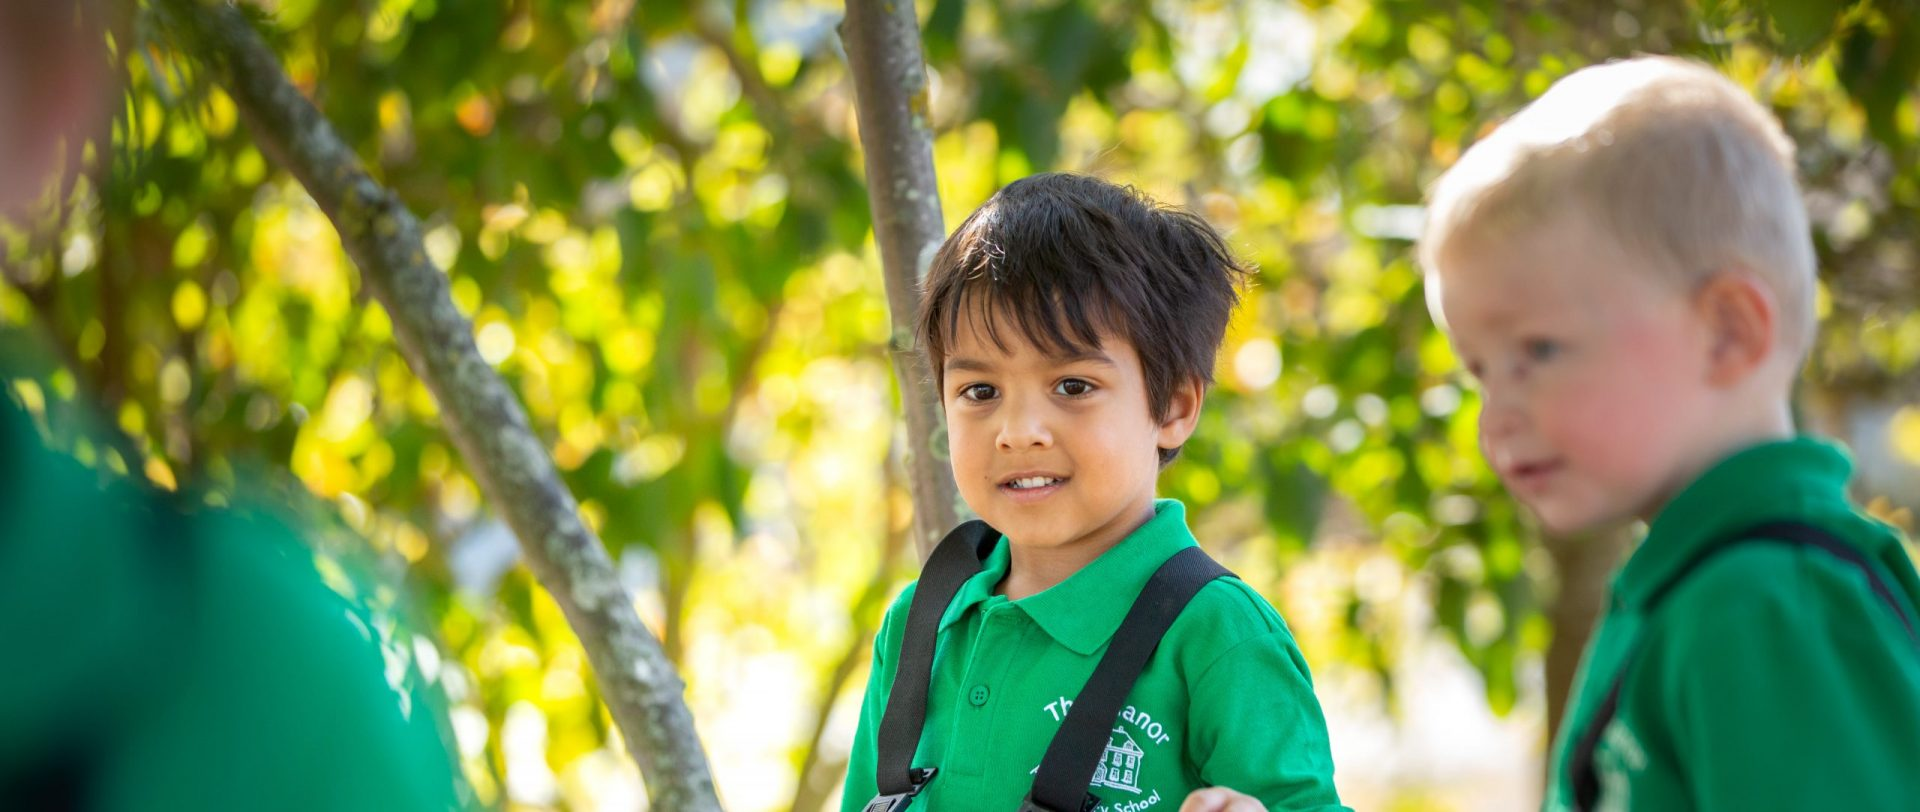 nursery aged children learning outdoors